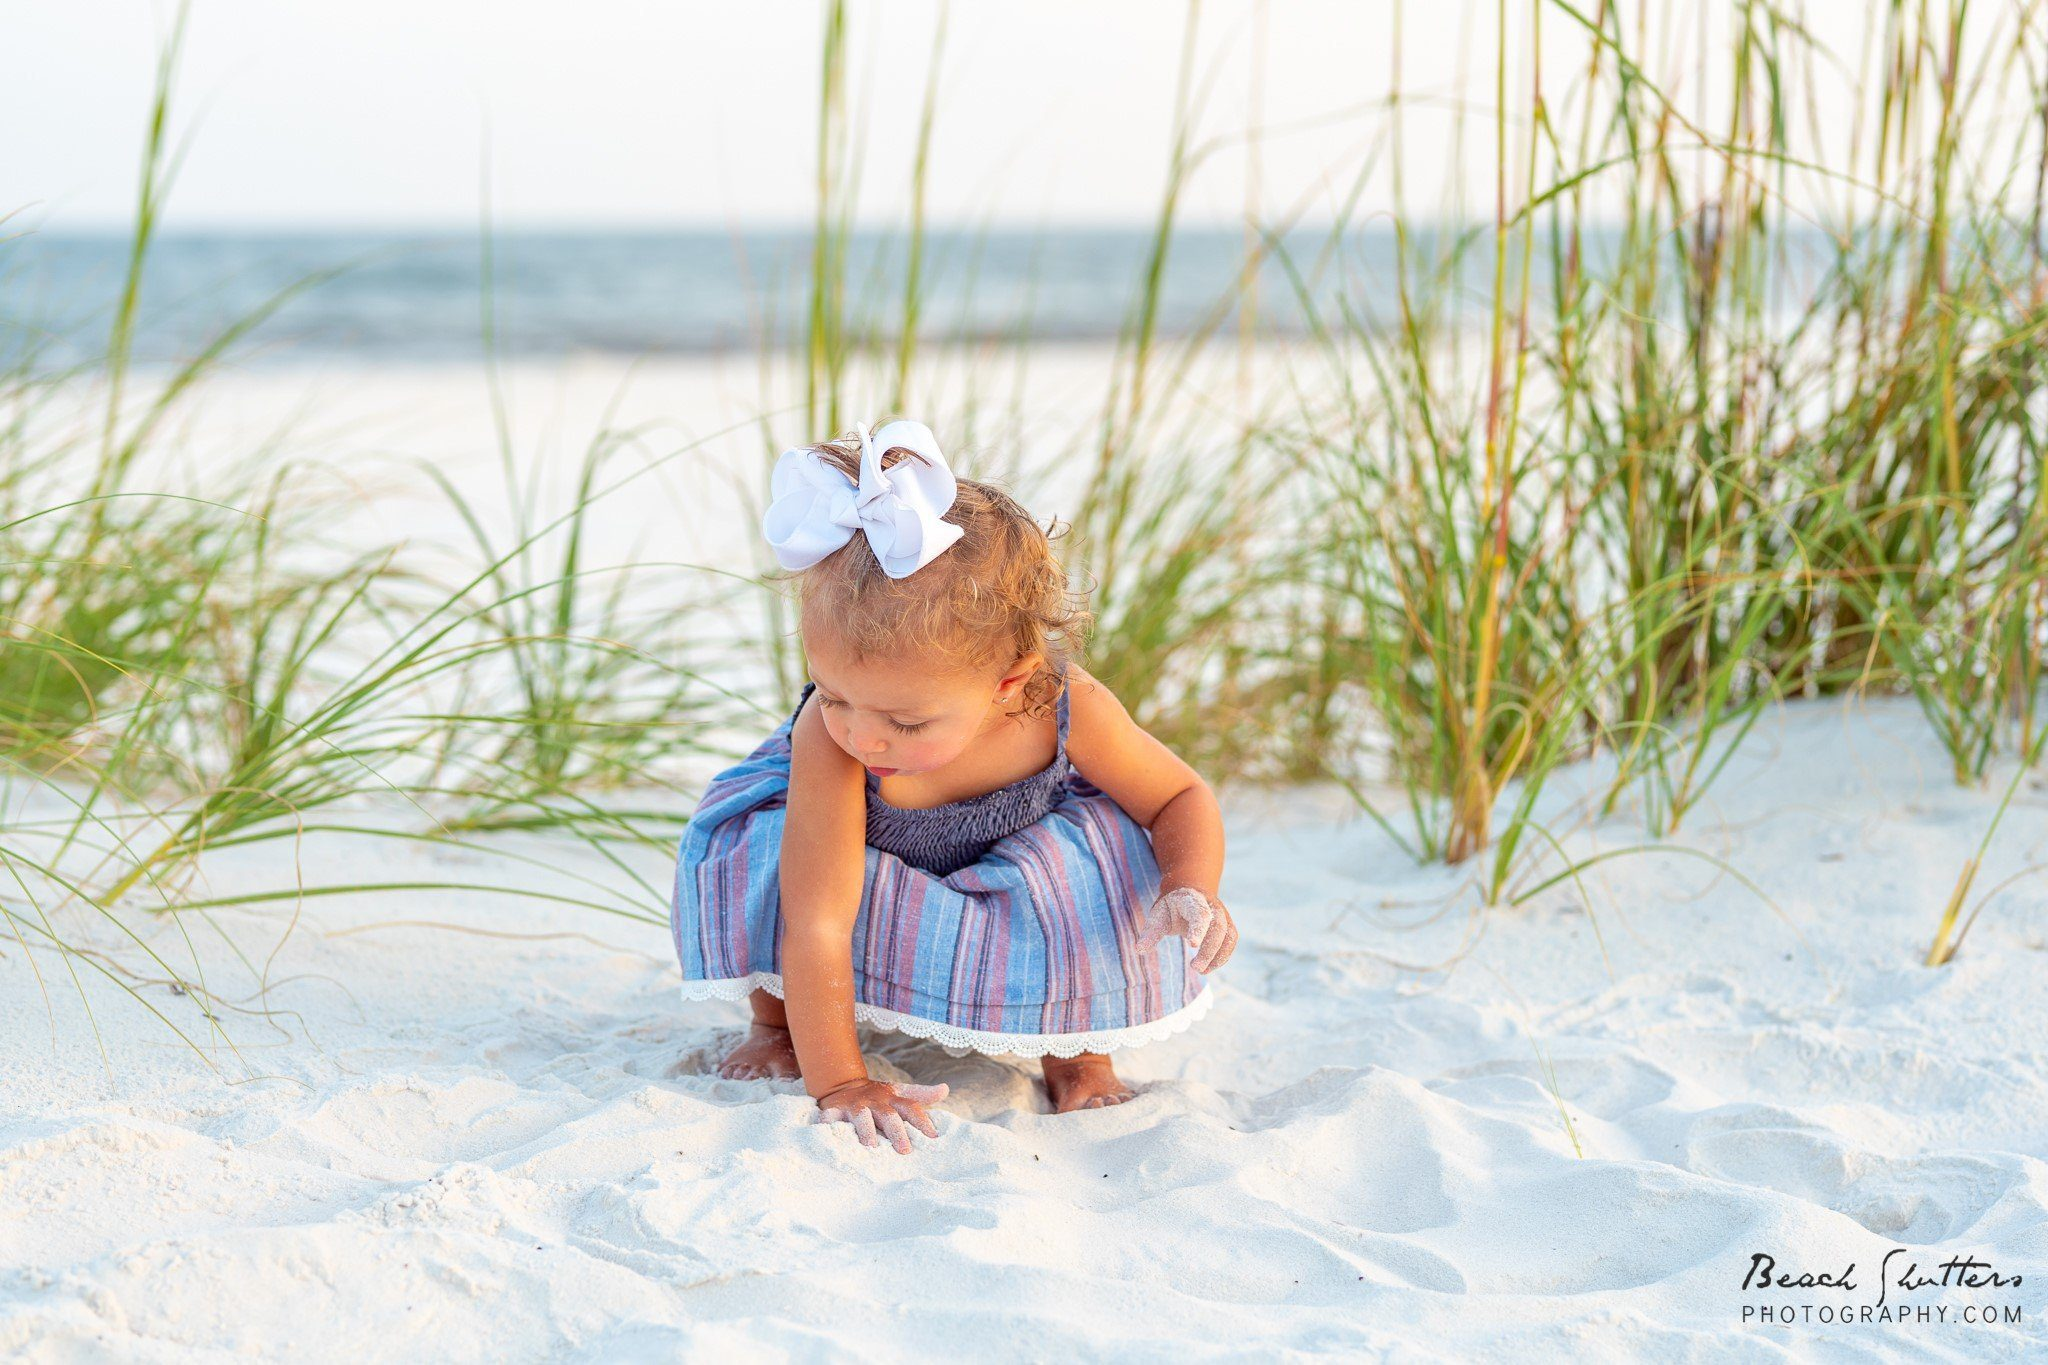 What to wear for family photography